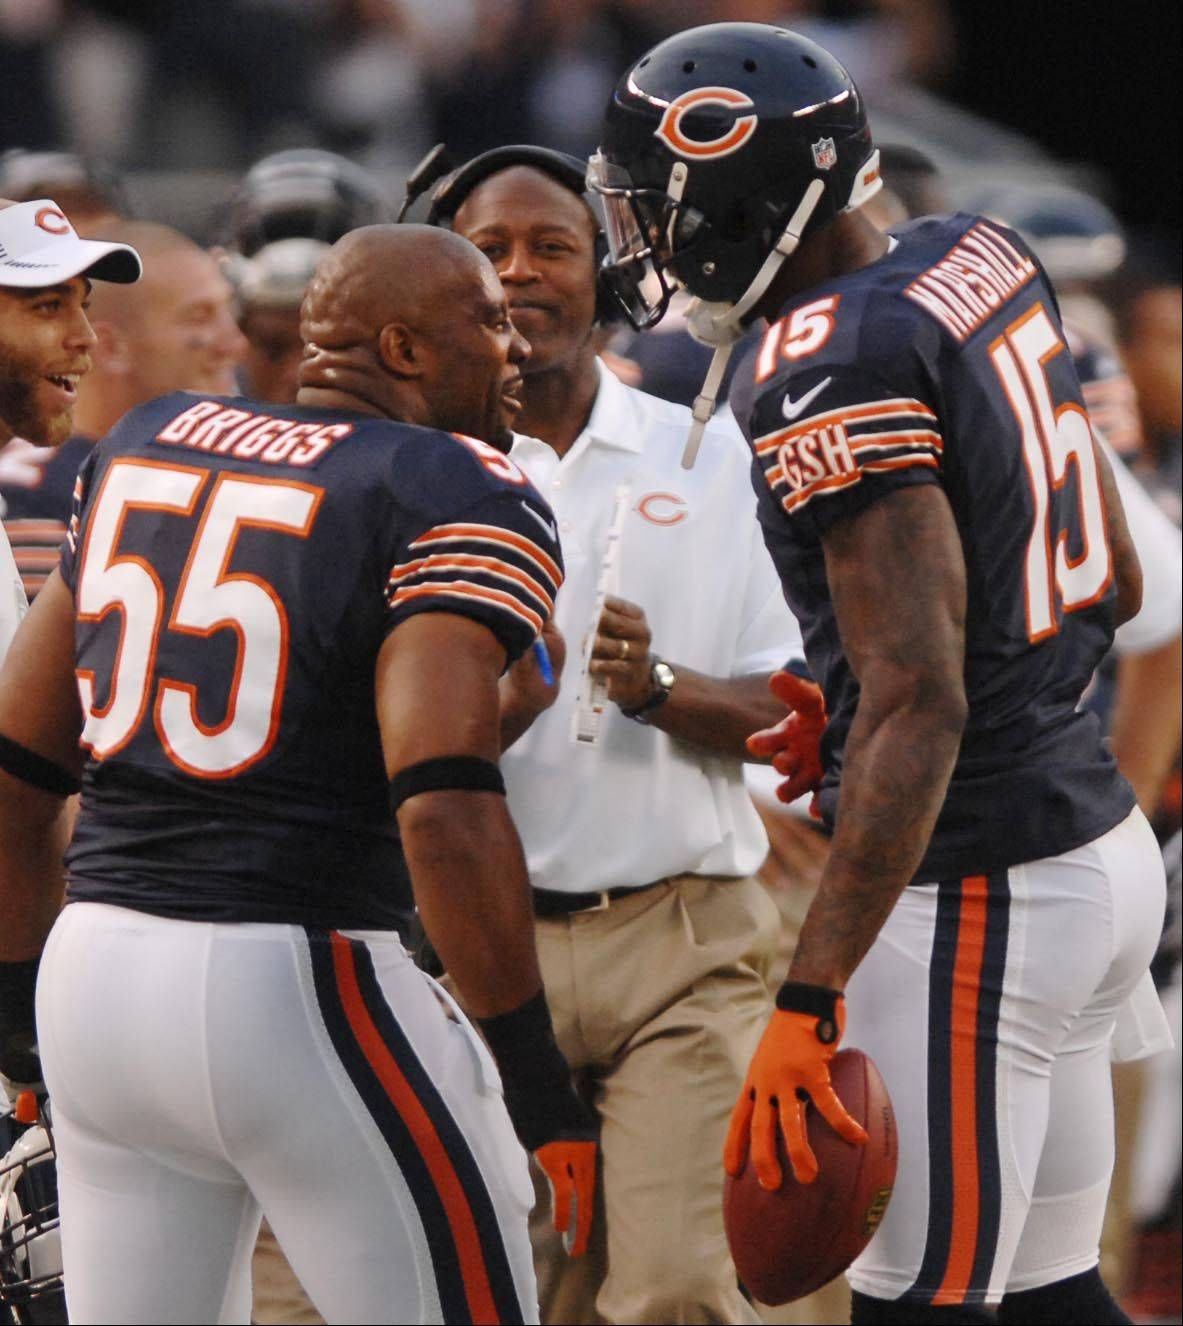 Chicago Bears wide receiver Brandon Marshall comes to the sidelines and linebacker Lance Briggs as coach Lovie Smith applauded his first-down catch Saturday against the Washington Redskins in the second preseason game at Soldier Field in Chicago.